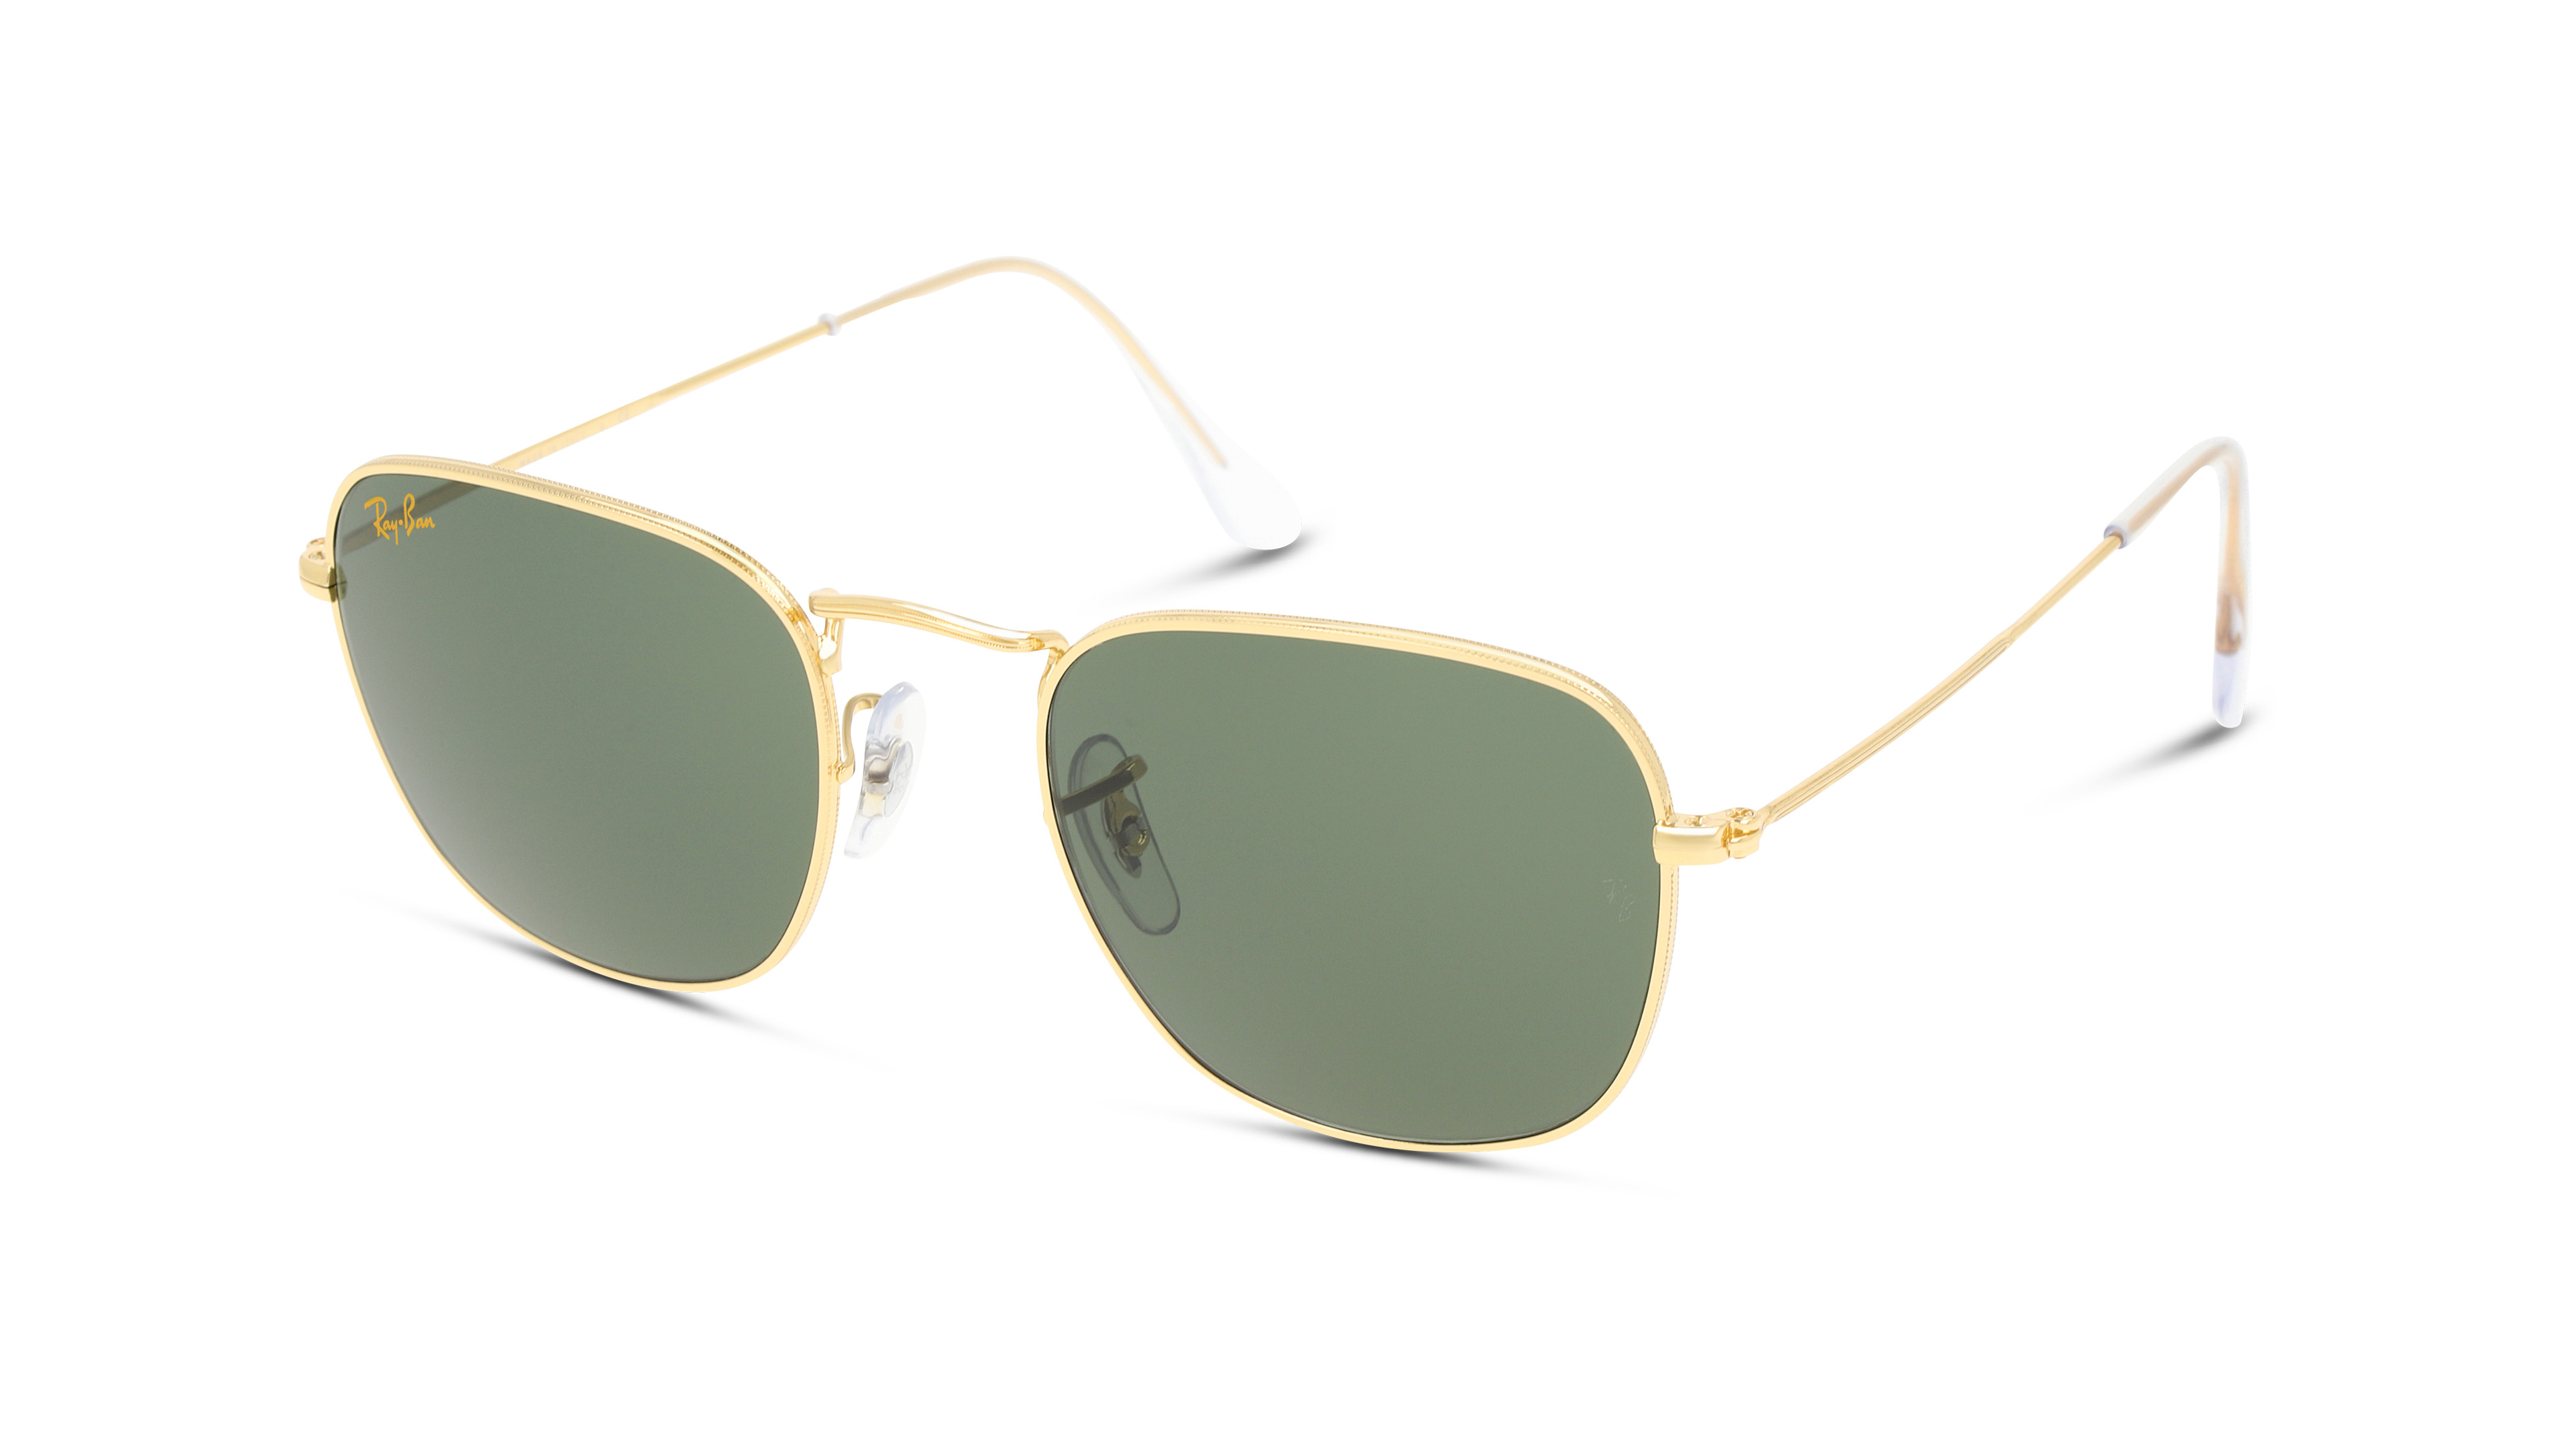 8056597178433-angle-Ray-Ban-Sonnenbrille-0rb3857-Legend-gold